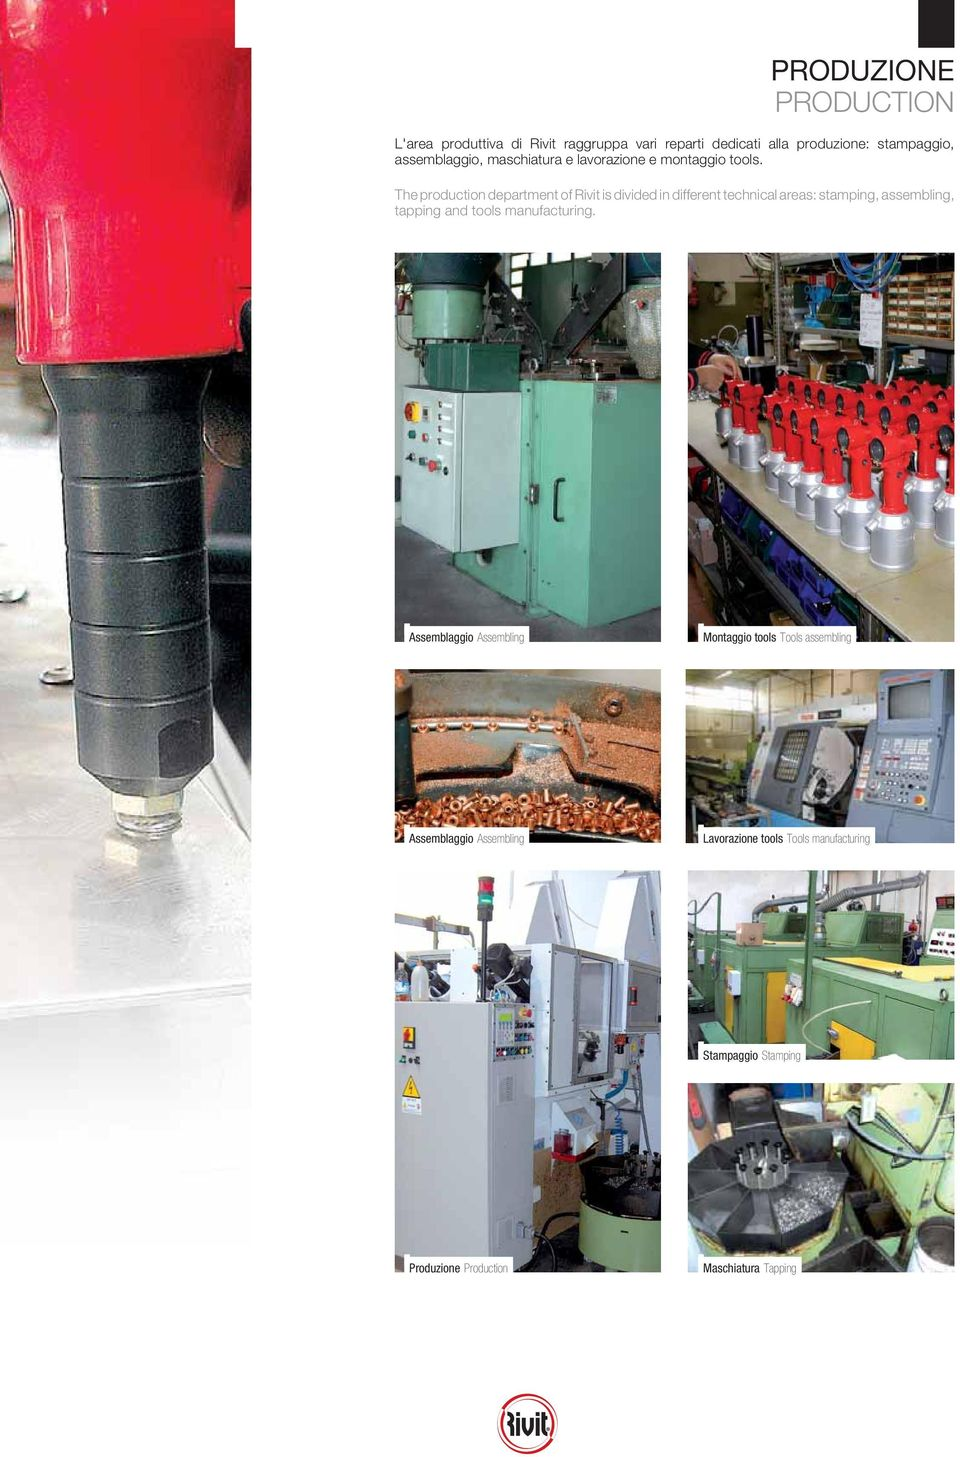 he prouction epartment of Rivit is ivie in ifferent technical areas: stamping, assembling, tapping an tools